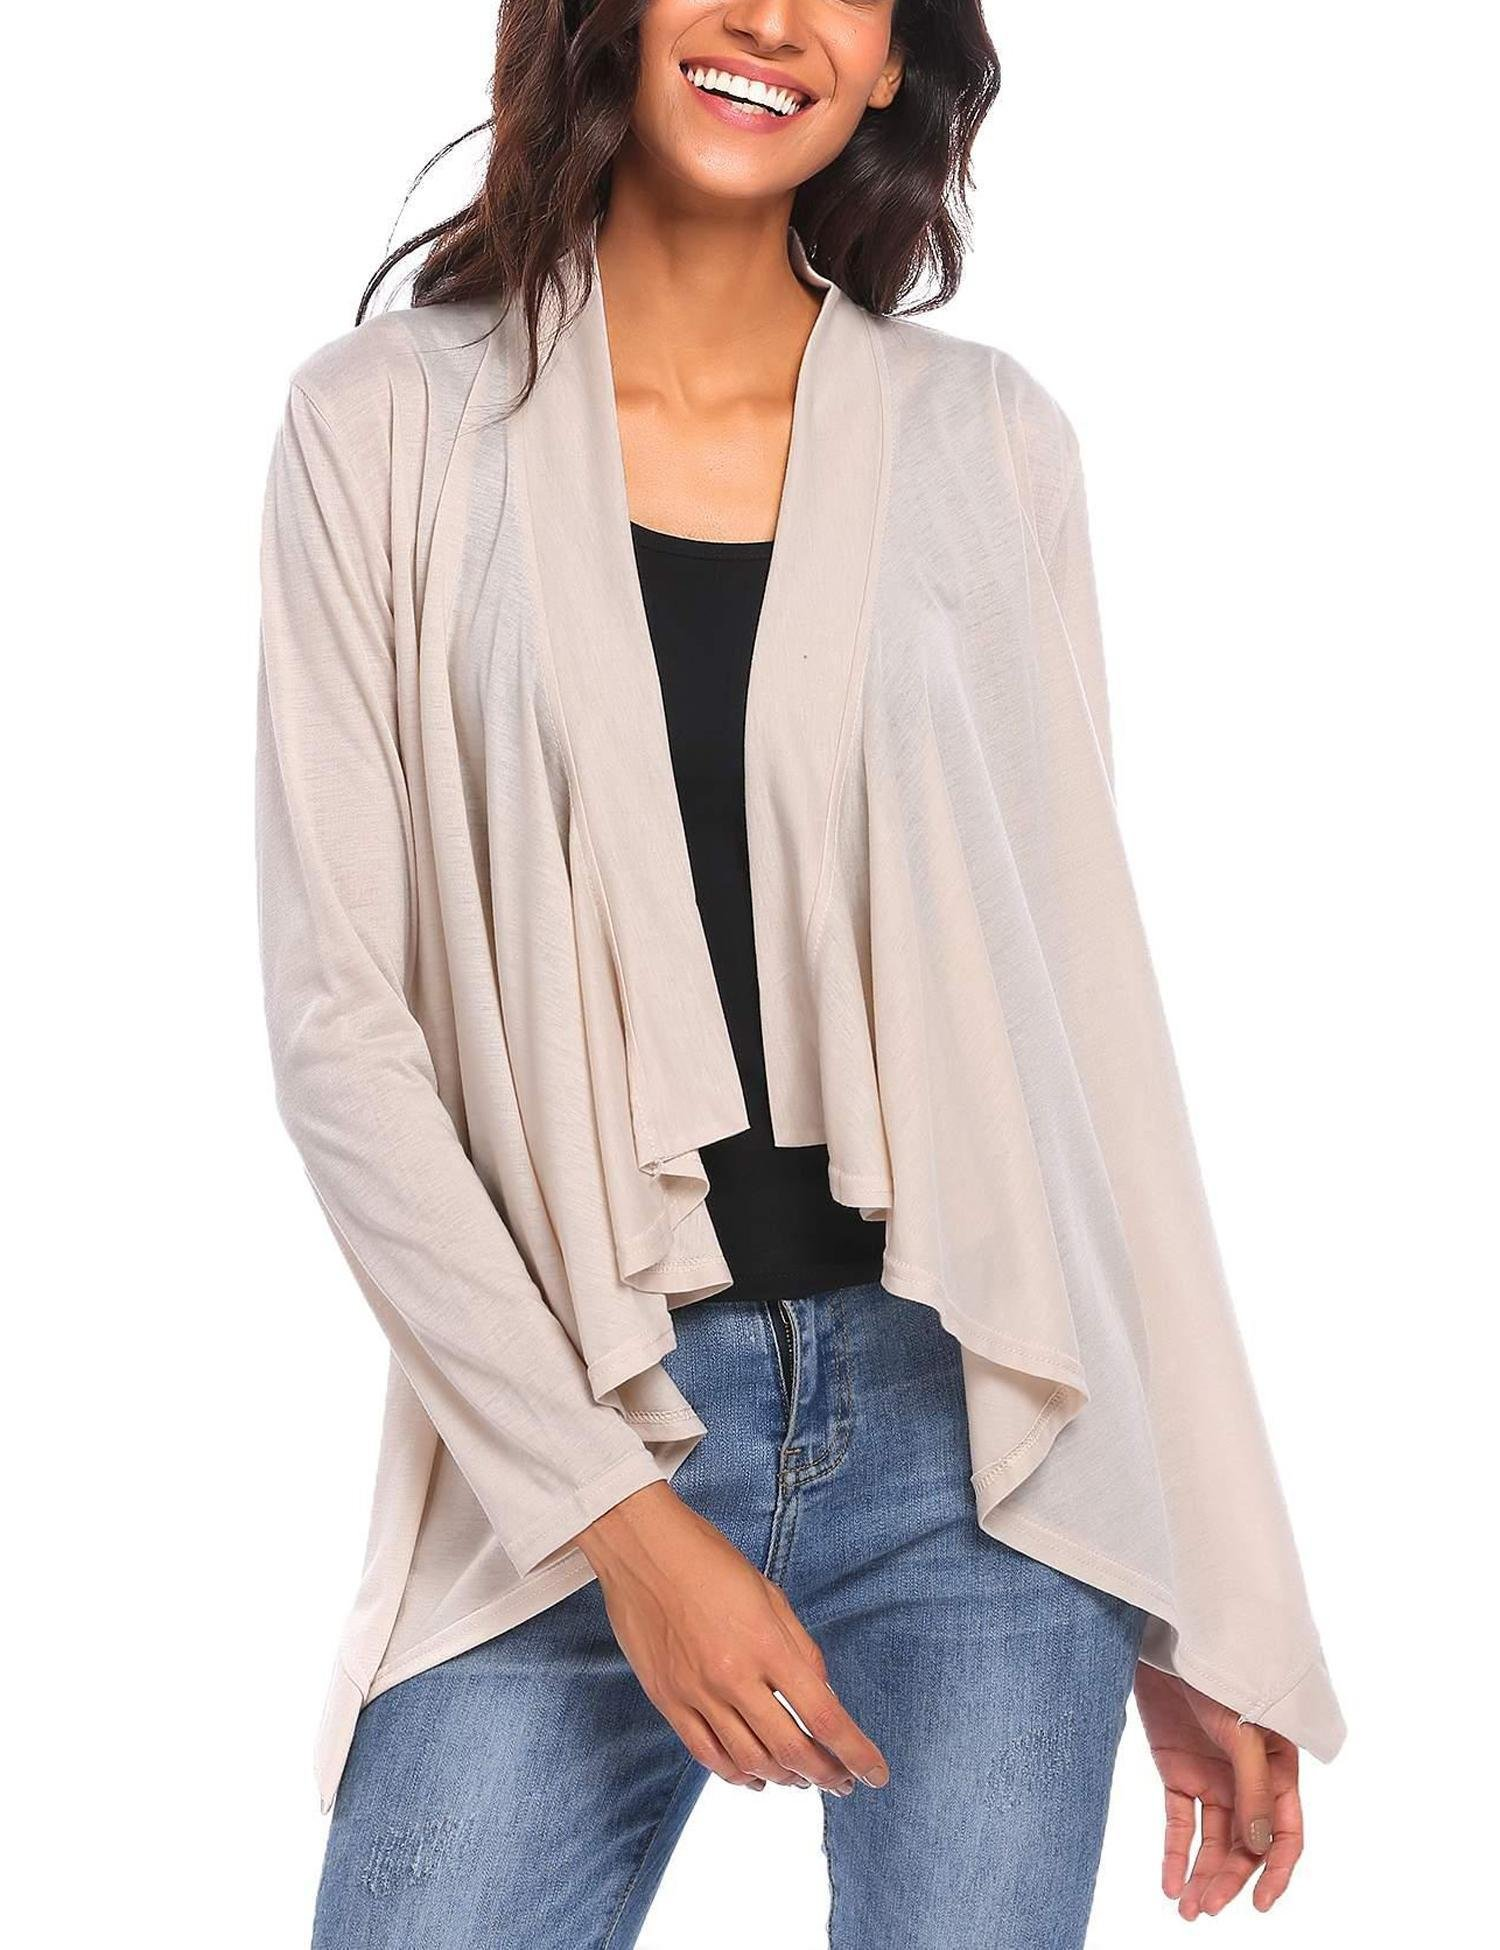 Pagacat Women's Open Front Long Sleeve Summer Pluse Size Casual Cardigan (Beige, XL)